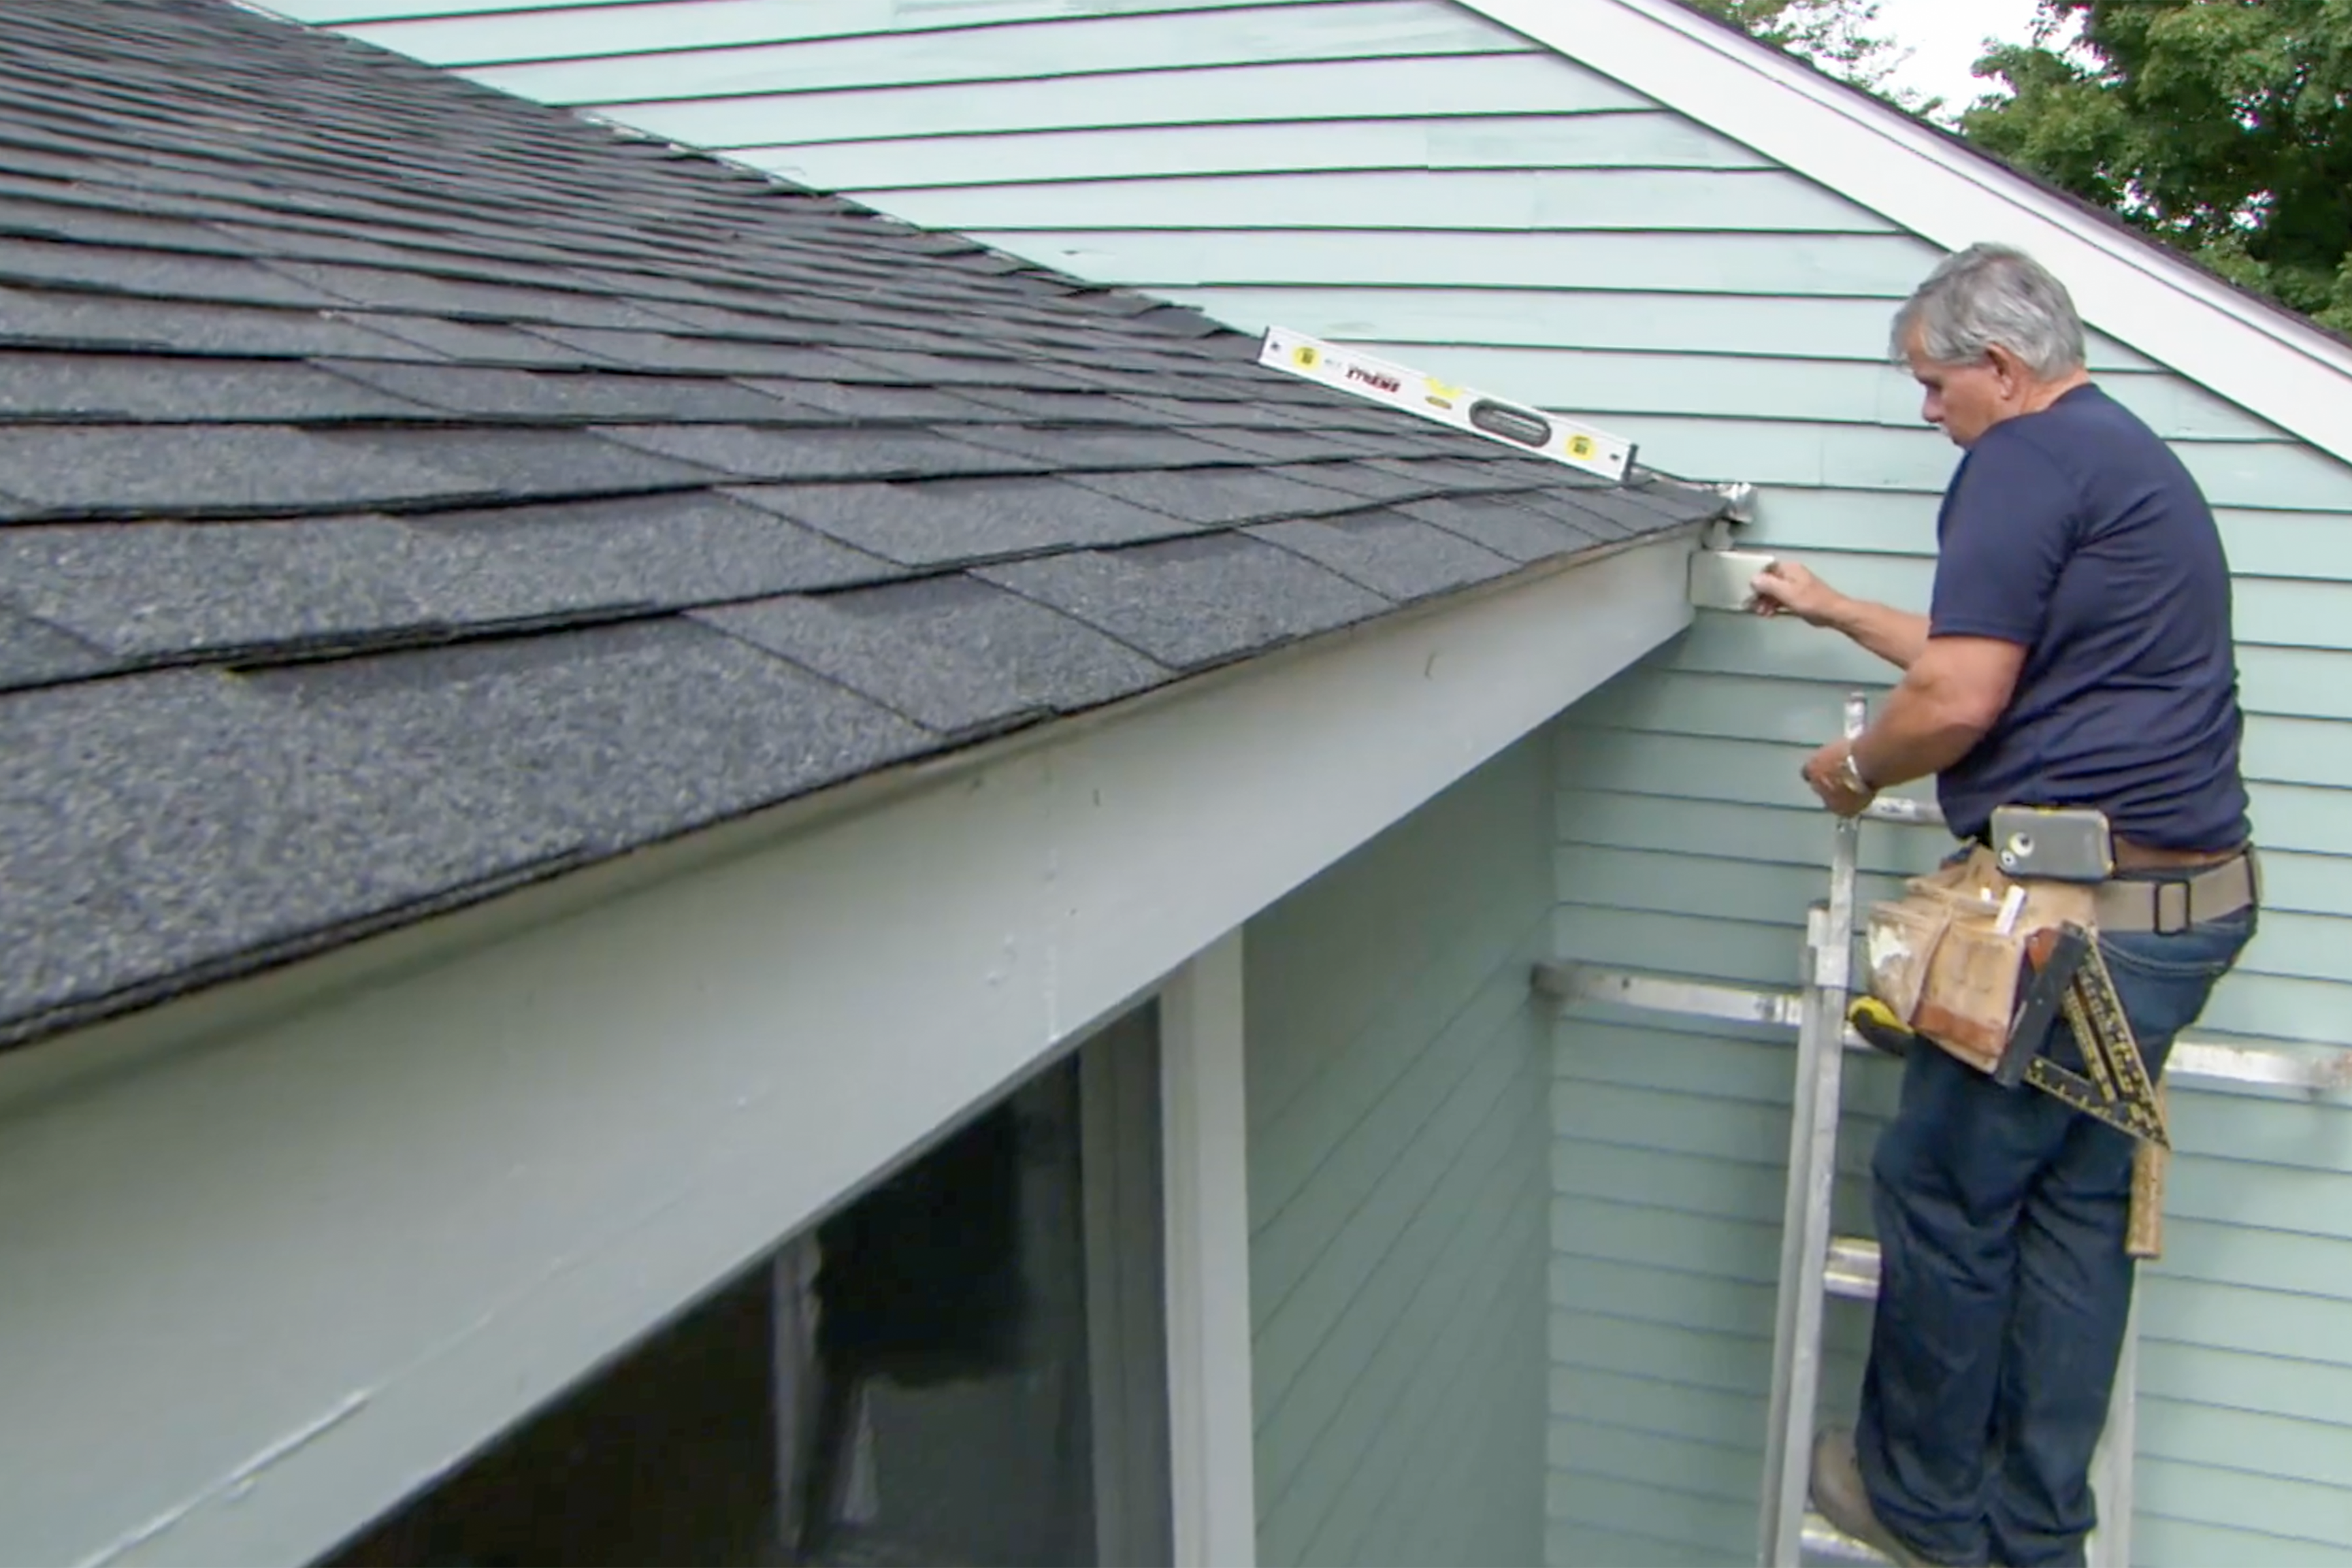 Tom Silva measuring a roof to install new gutters.